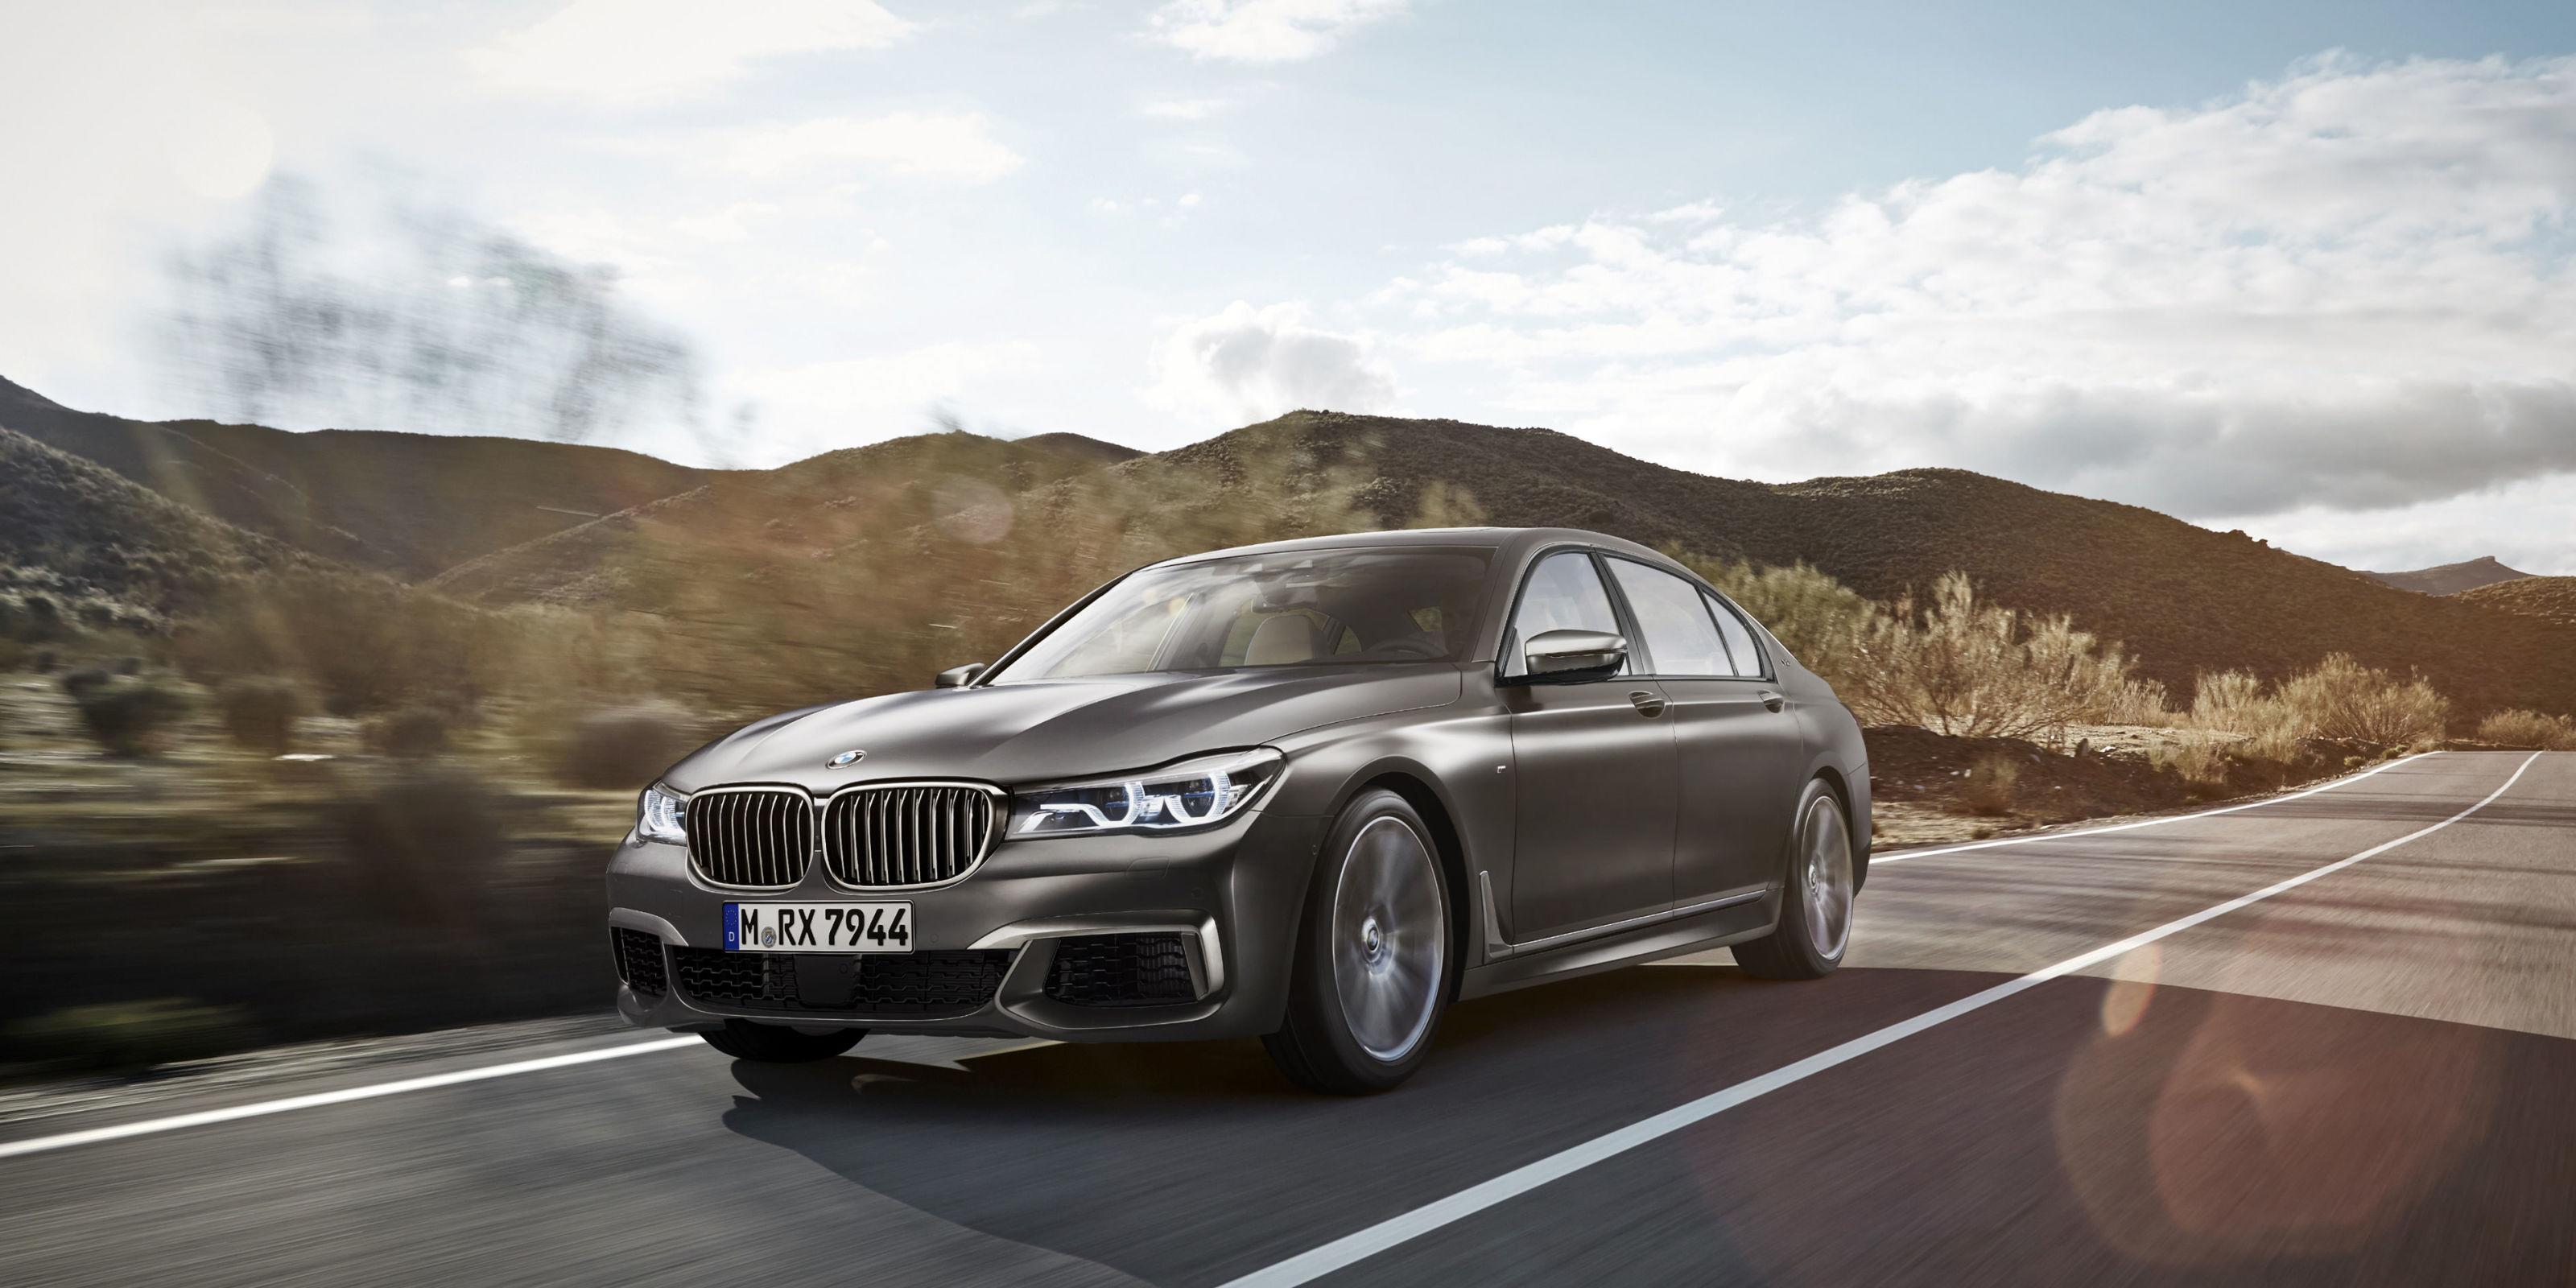 BMW M760i XDrive: The 7 Series Finally Gets an M Badge